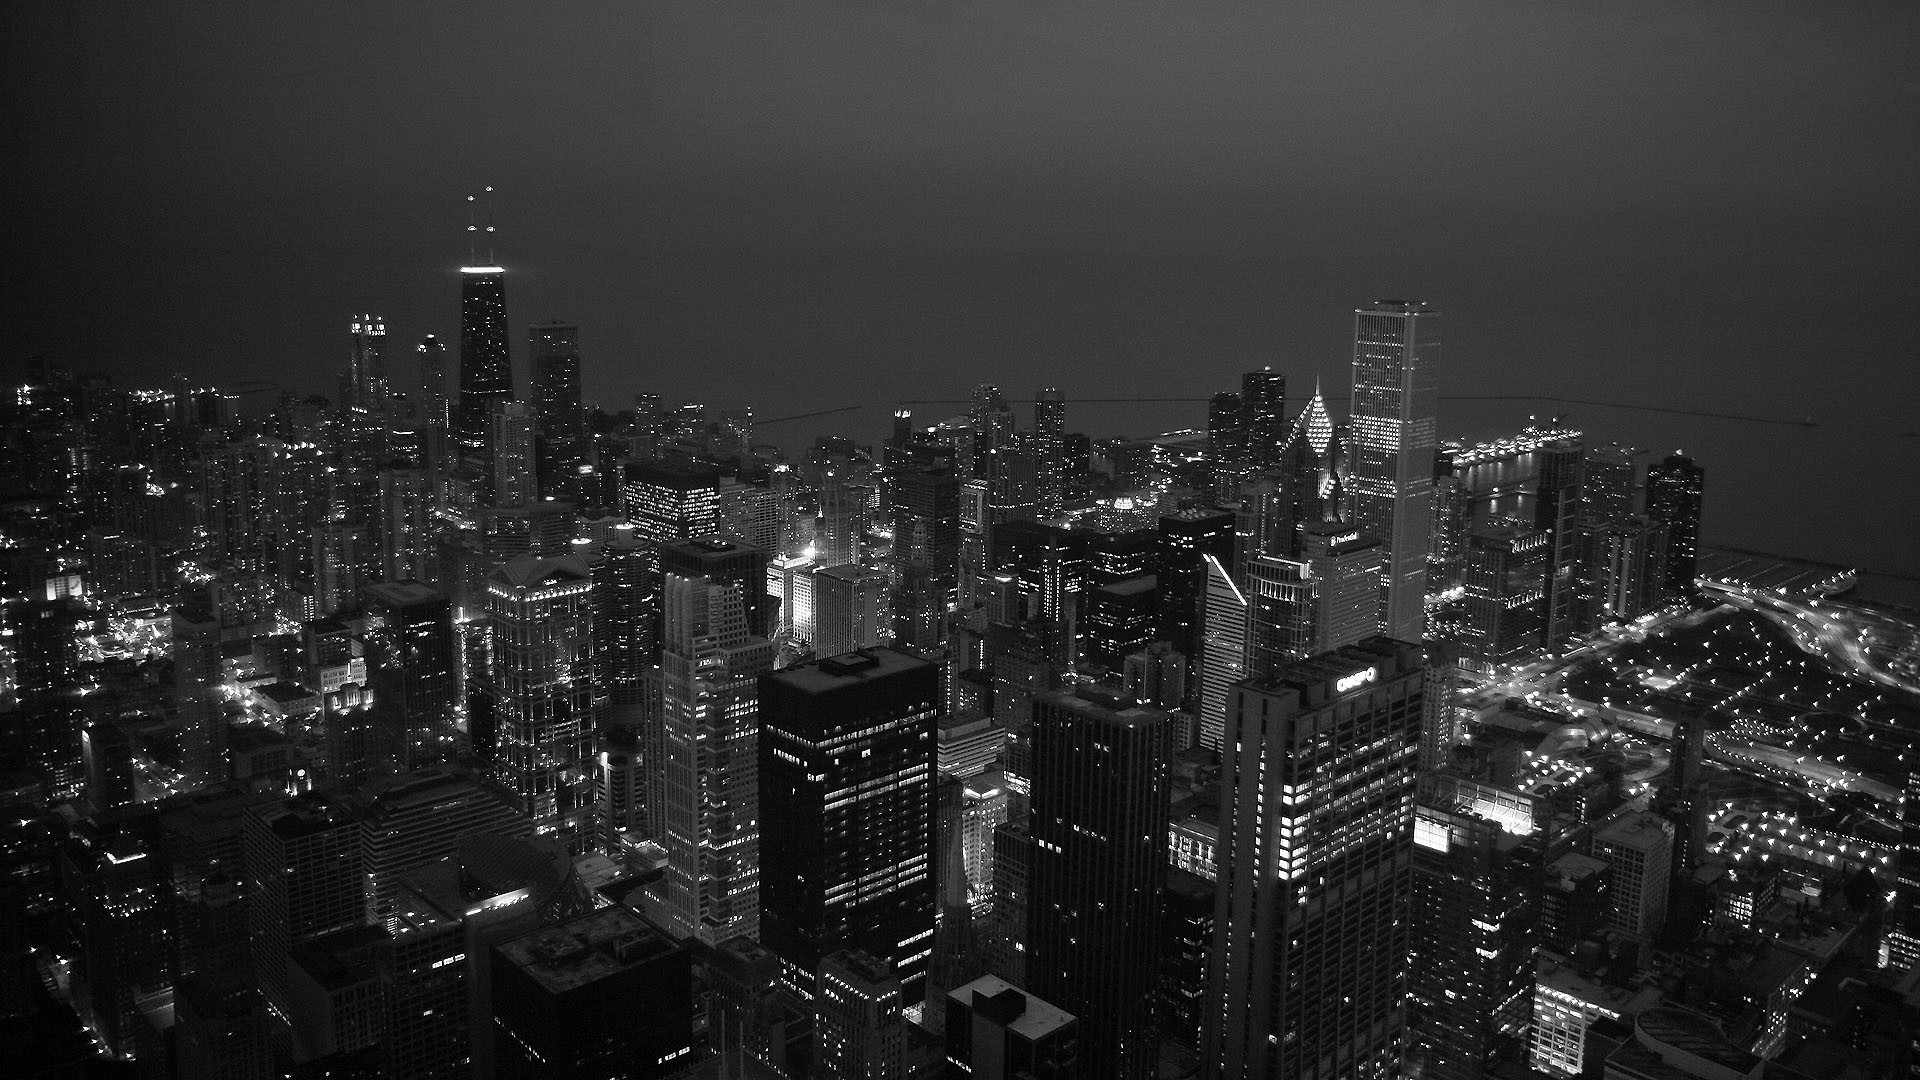 Black And White Hd Wallpapers Widescreen for Desktop Background  px 407.08 KB